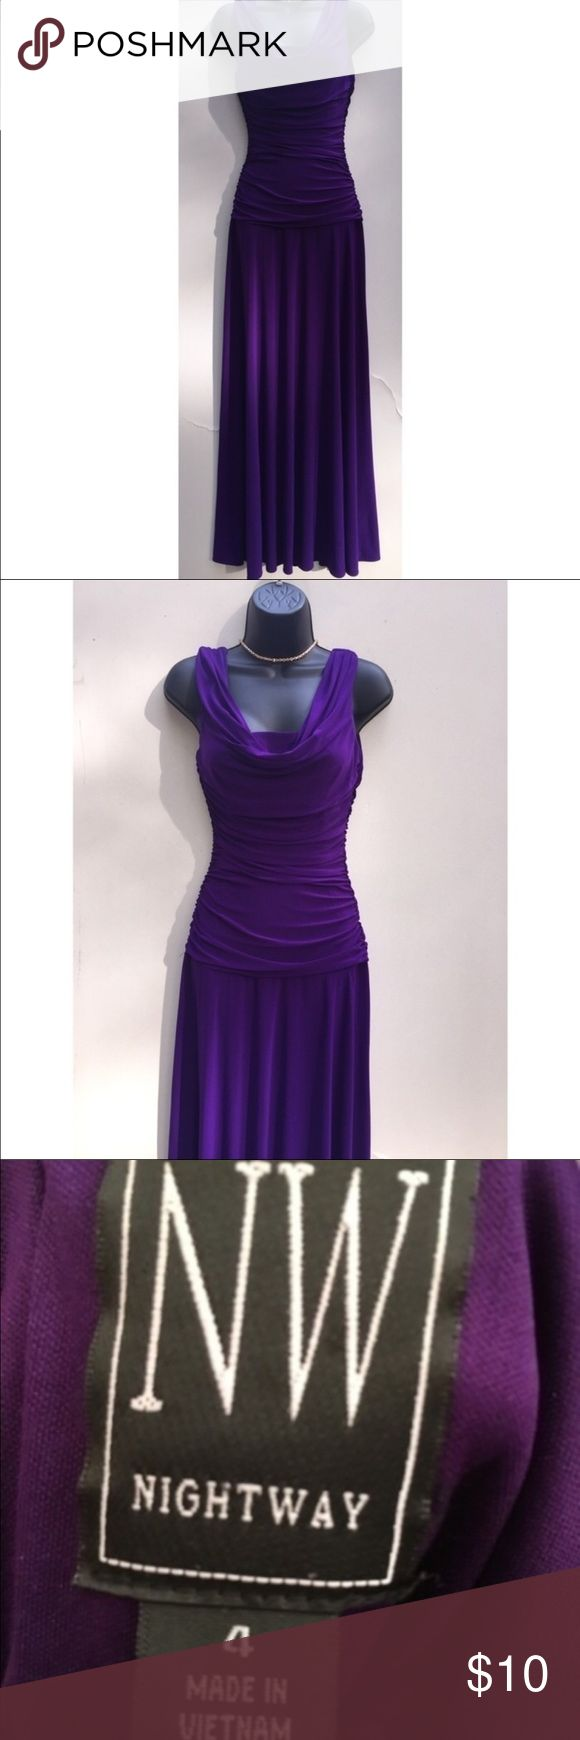 Flowy Floor Length Purple Body Hugging Dress •Size: Tag says size 4 (Small)/ will fit Medium •Condition: great/no flaws!  •Description: floor lengtht, flow-y at the bottom and body hugging at the top. VERY stretchy material. Dresses